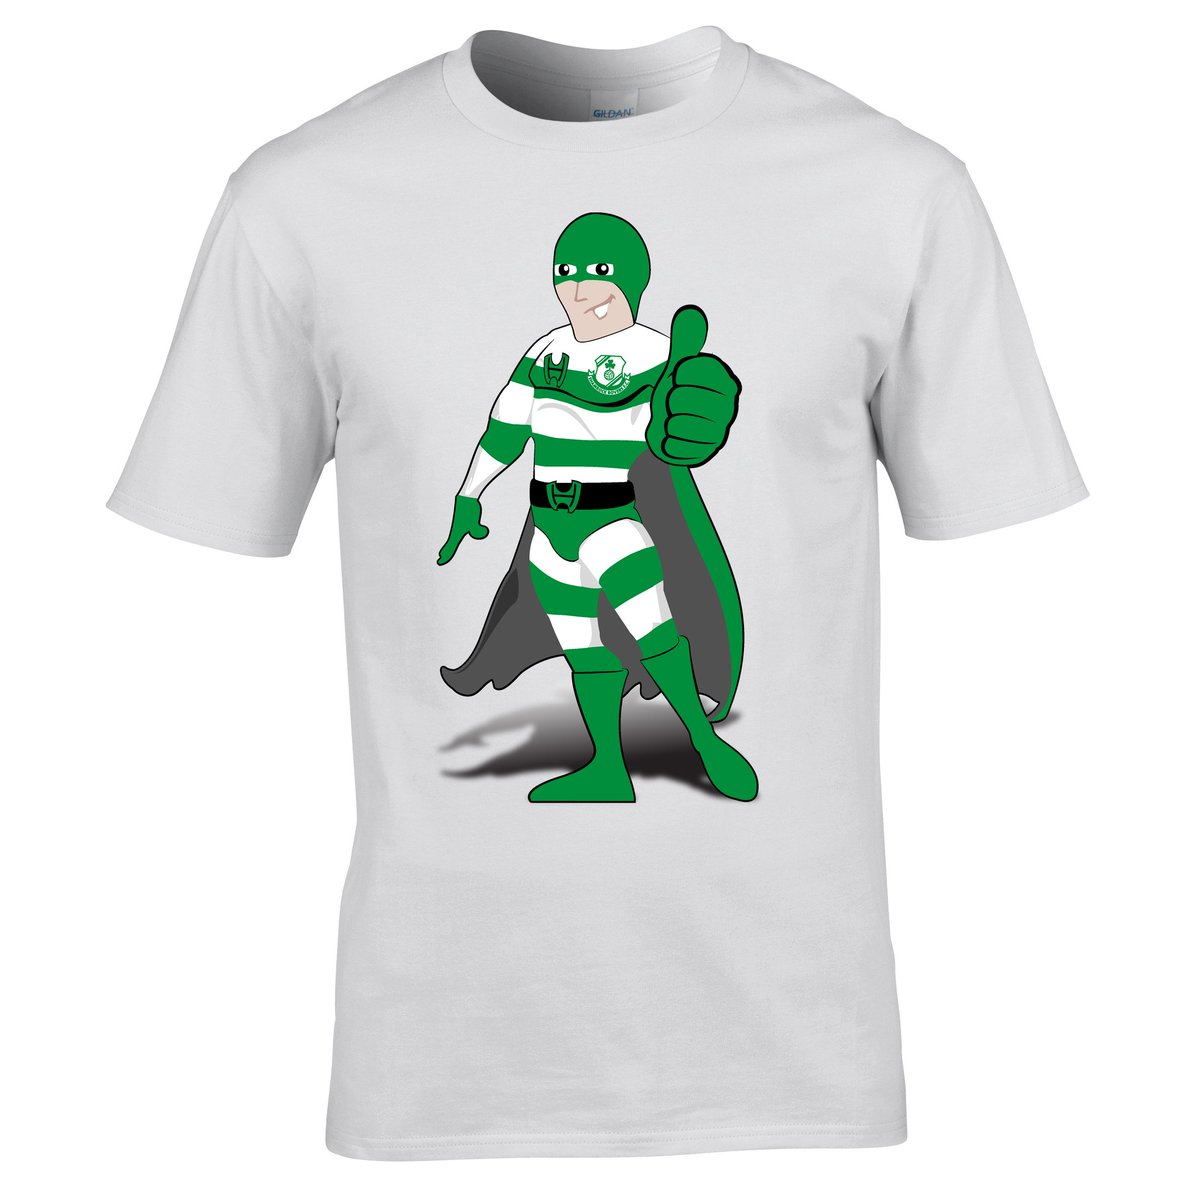 Second and final chance to order one of the Iconic Range Ts at €15 plus delivery. Offer ends at midnight on Wednesday☘ https://t.co/T5apAb2plA